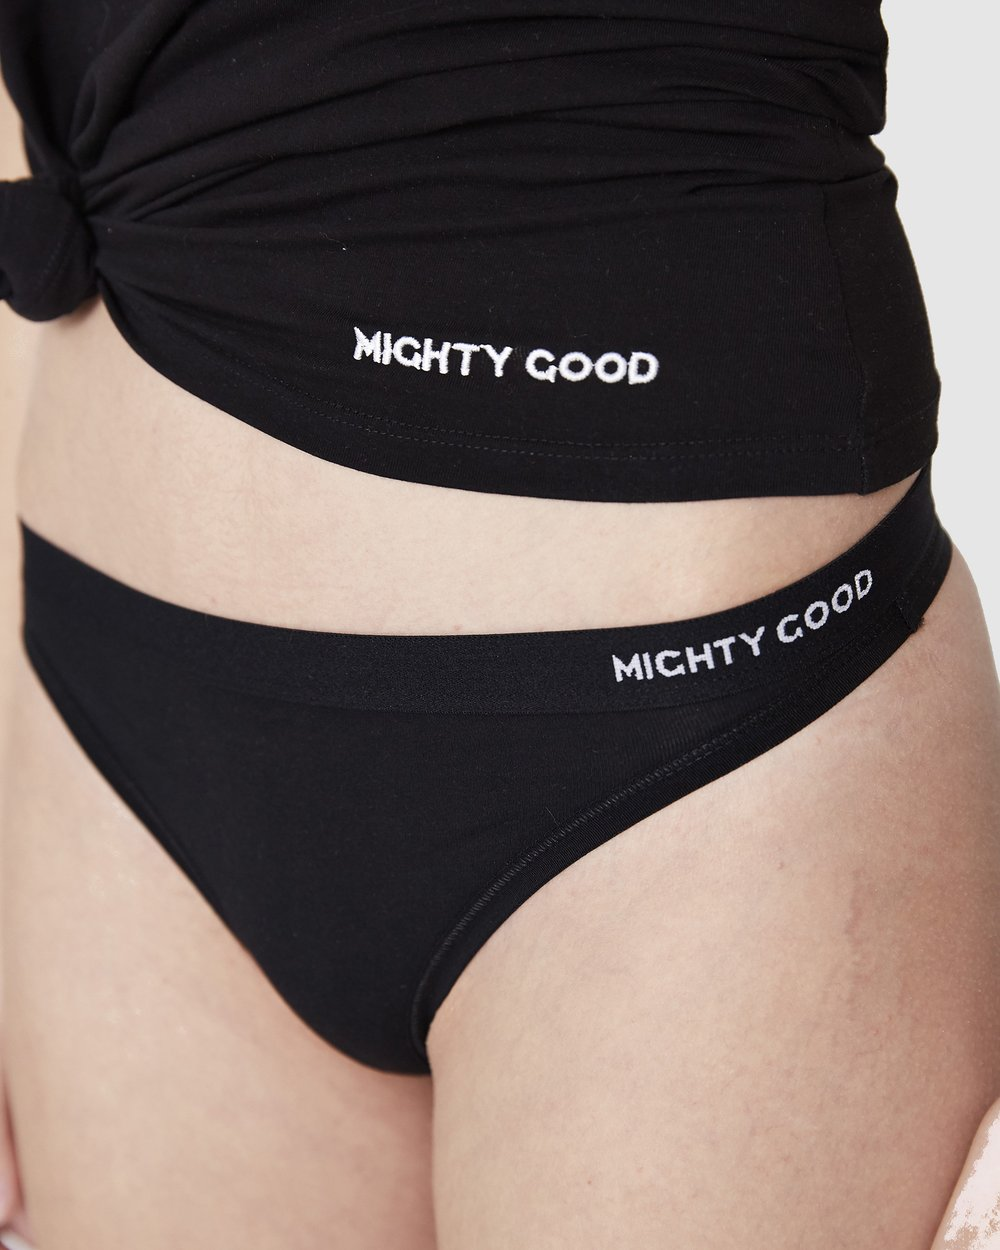 bb54360a8074 G-String - 7 Pack by Mighty Good Undies Online | THE ICONIC | Australia